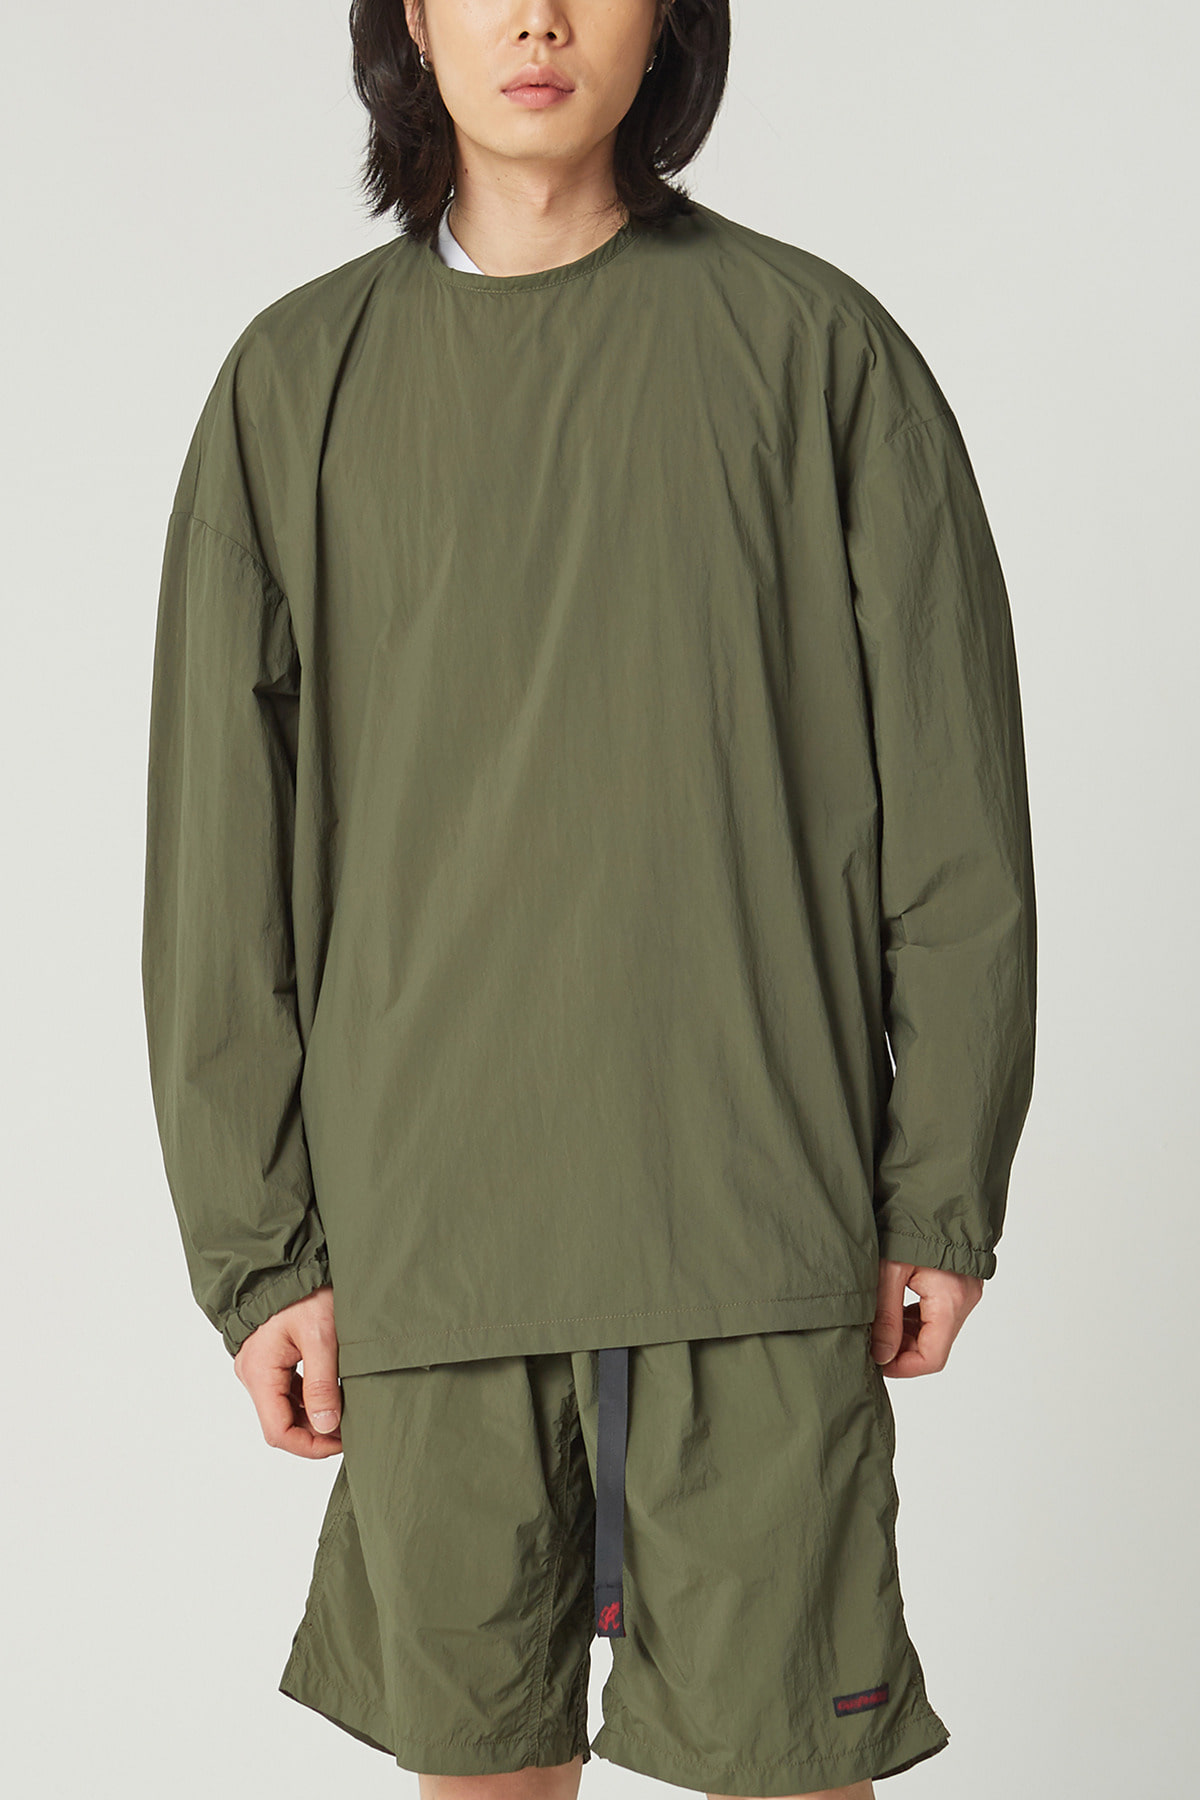 PACKABLE CAMP L/S TEE OLIVE